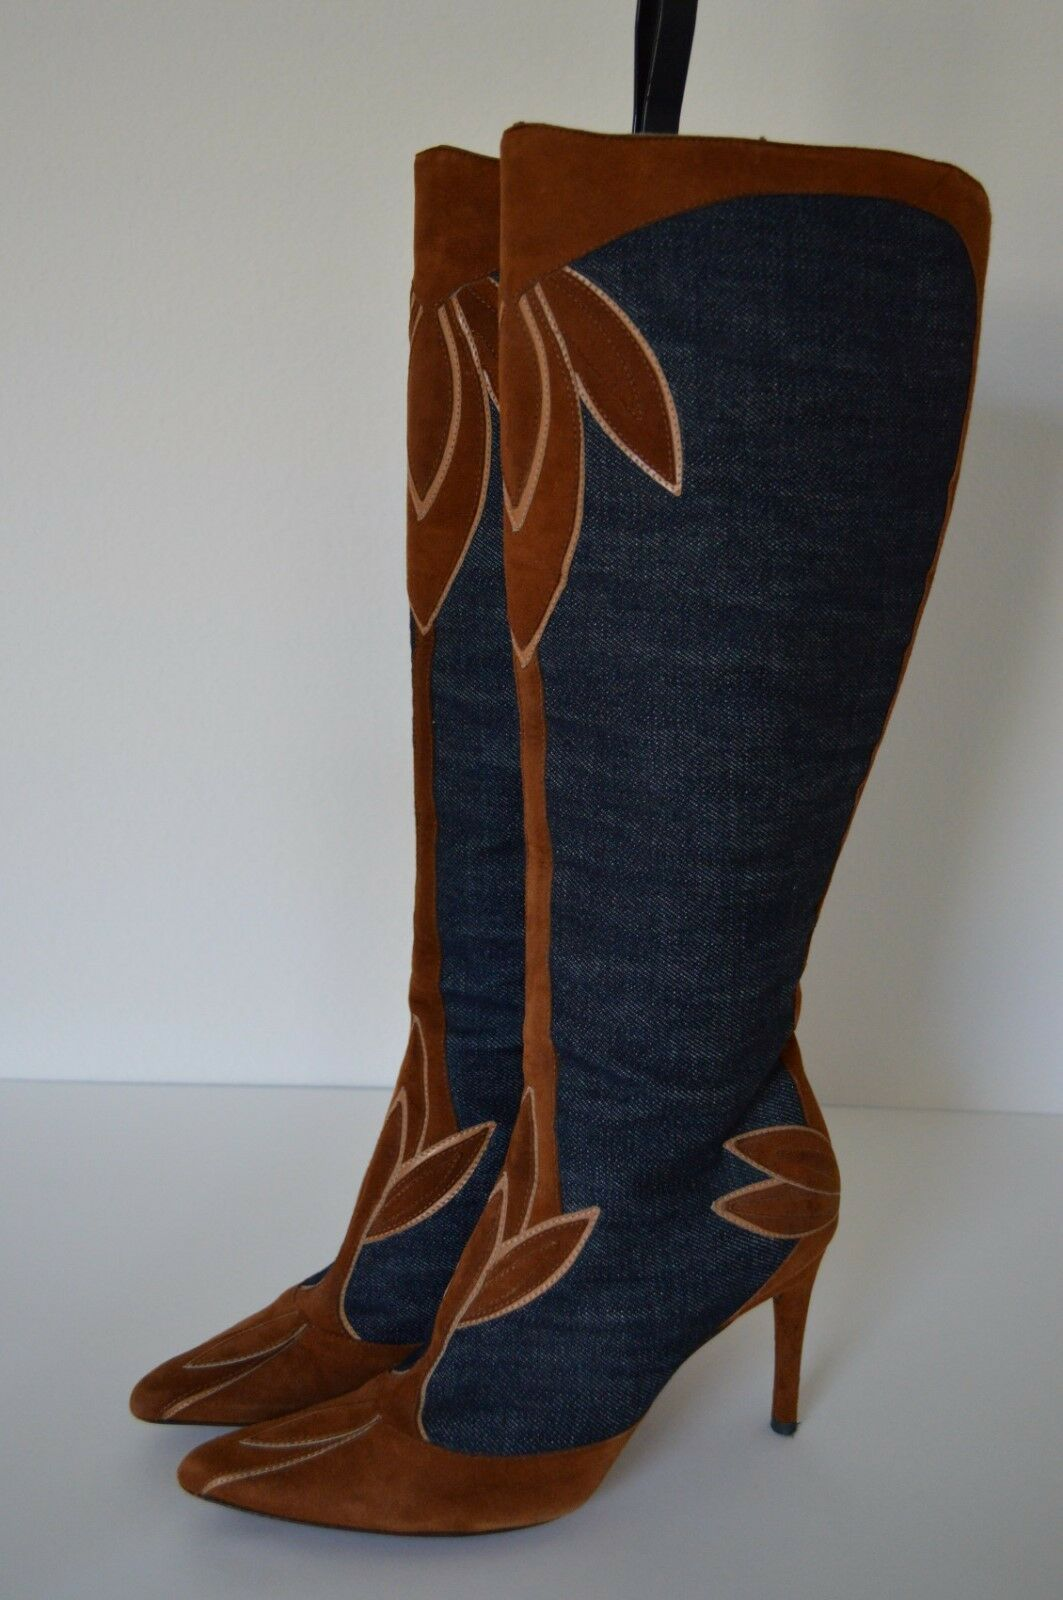 5.5 6 35 DOLCE & GABBANA D&G Denim Suede Leather Tall Pointed Toe Stiletto Boots